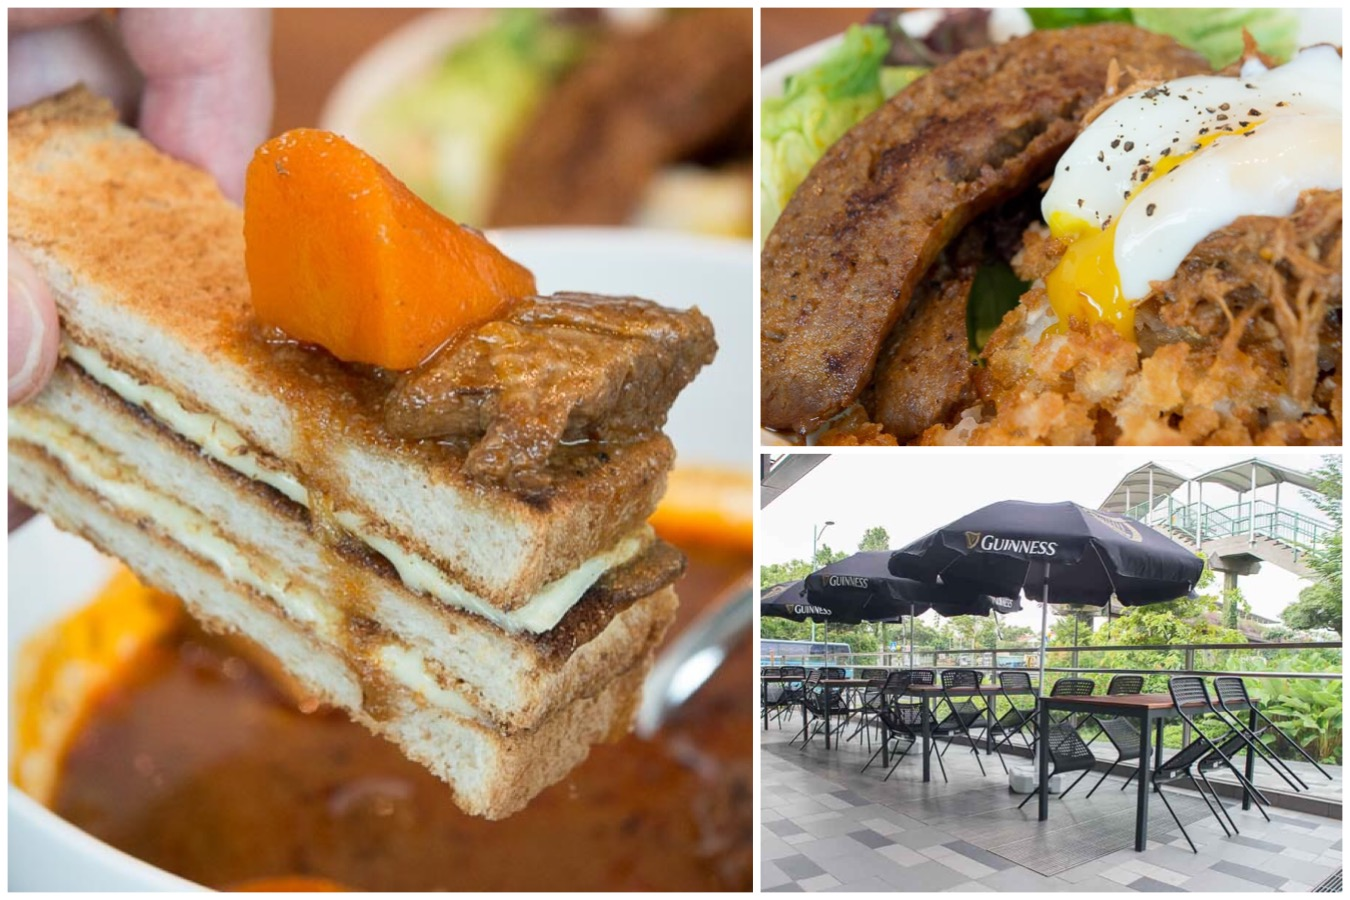 Graze by The Backyard Bakers – Quiet Café At West Coast With Decent Brunch And Specialty Cold-Brews. No GST And Service Charge